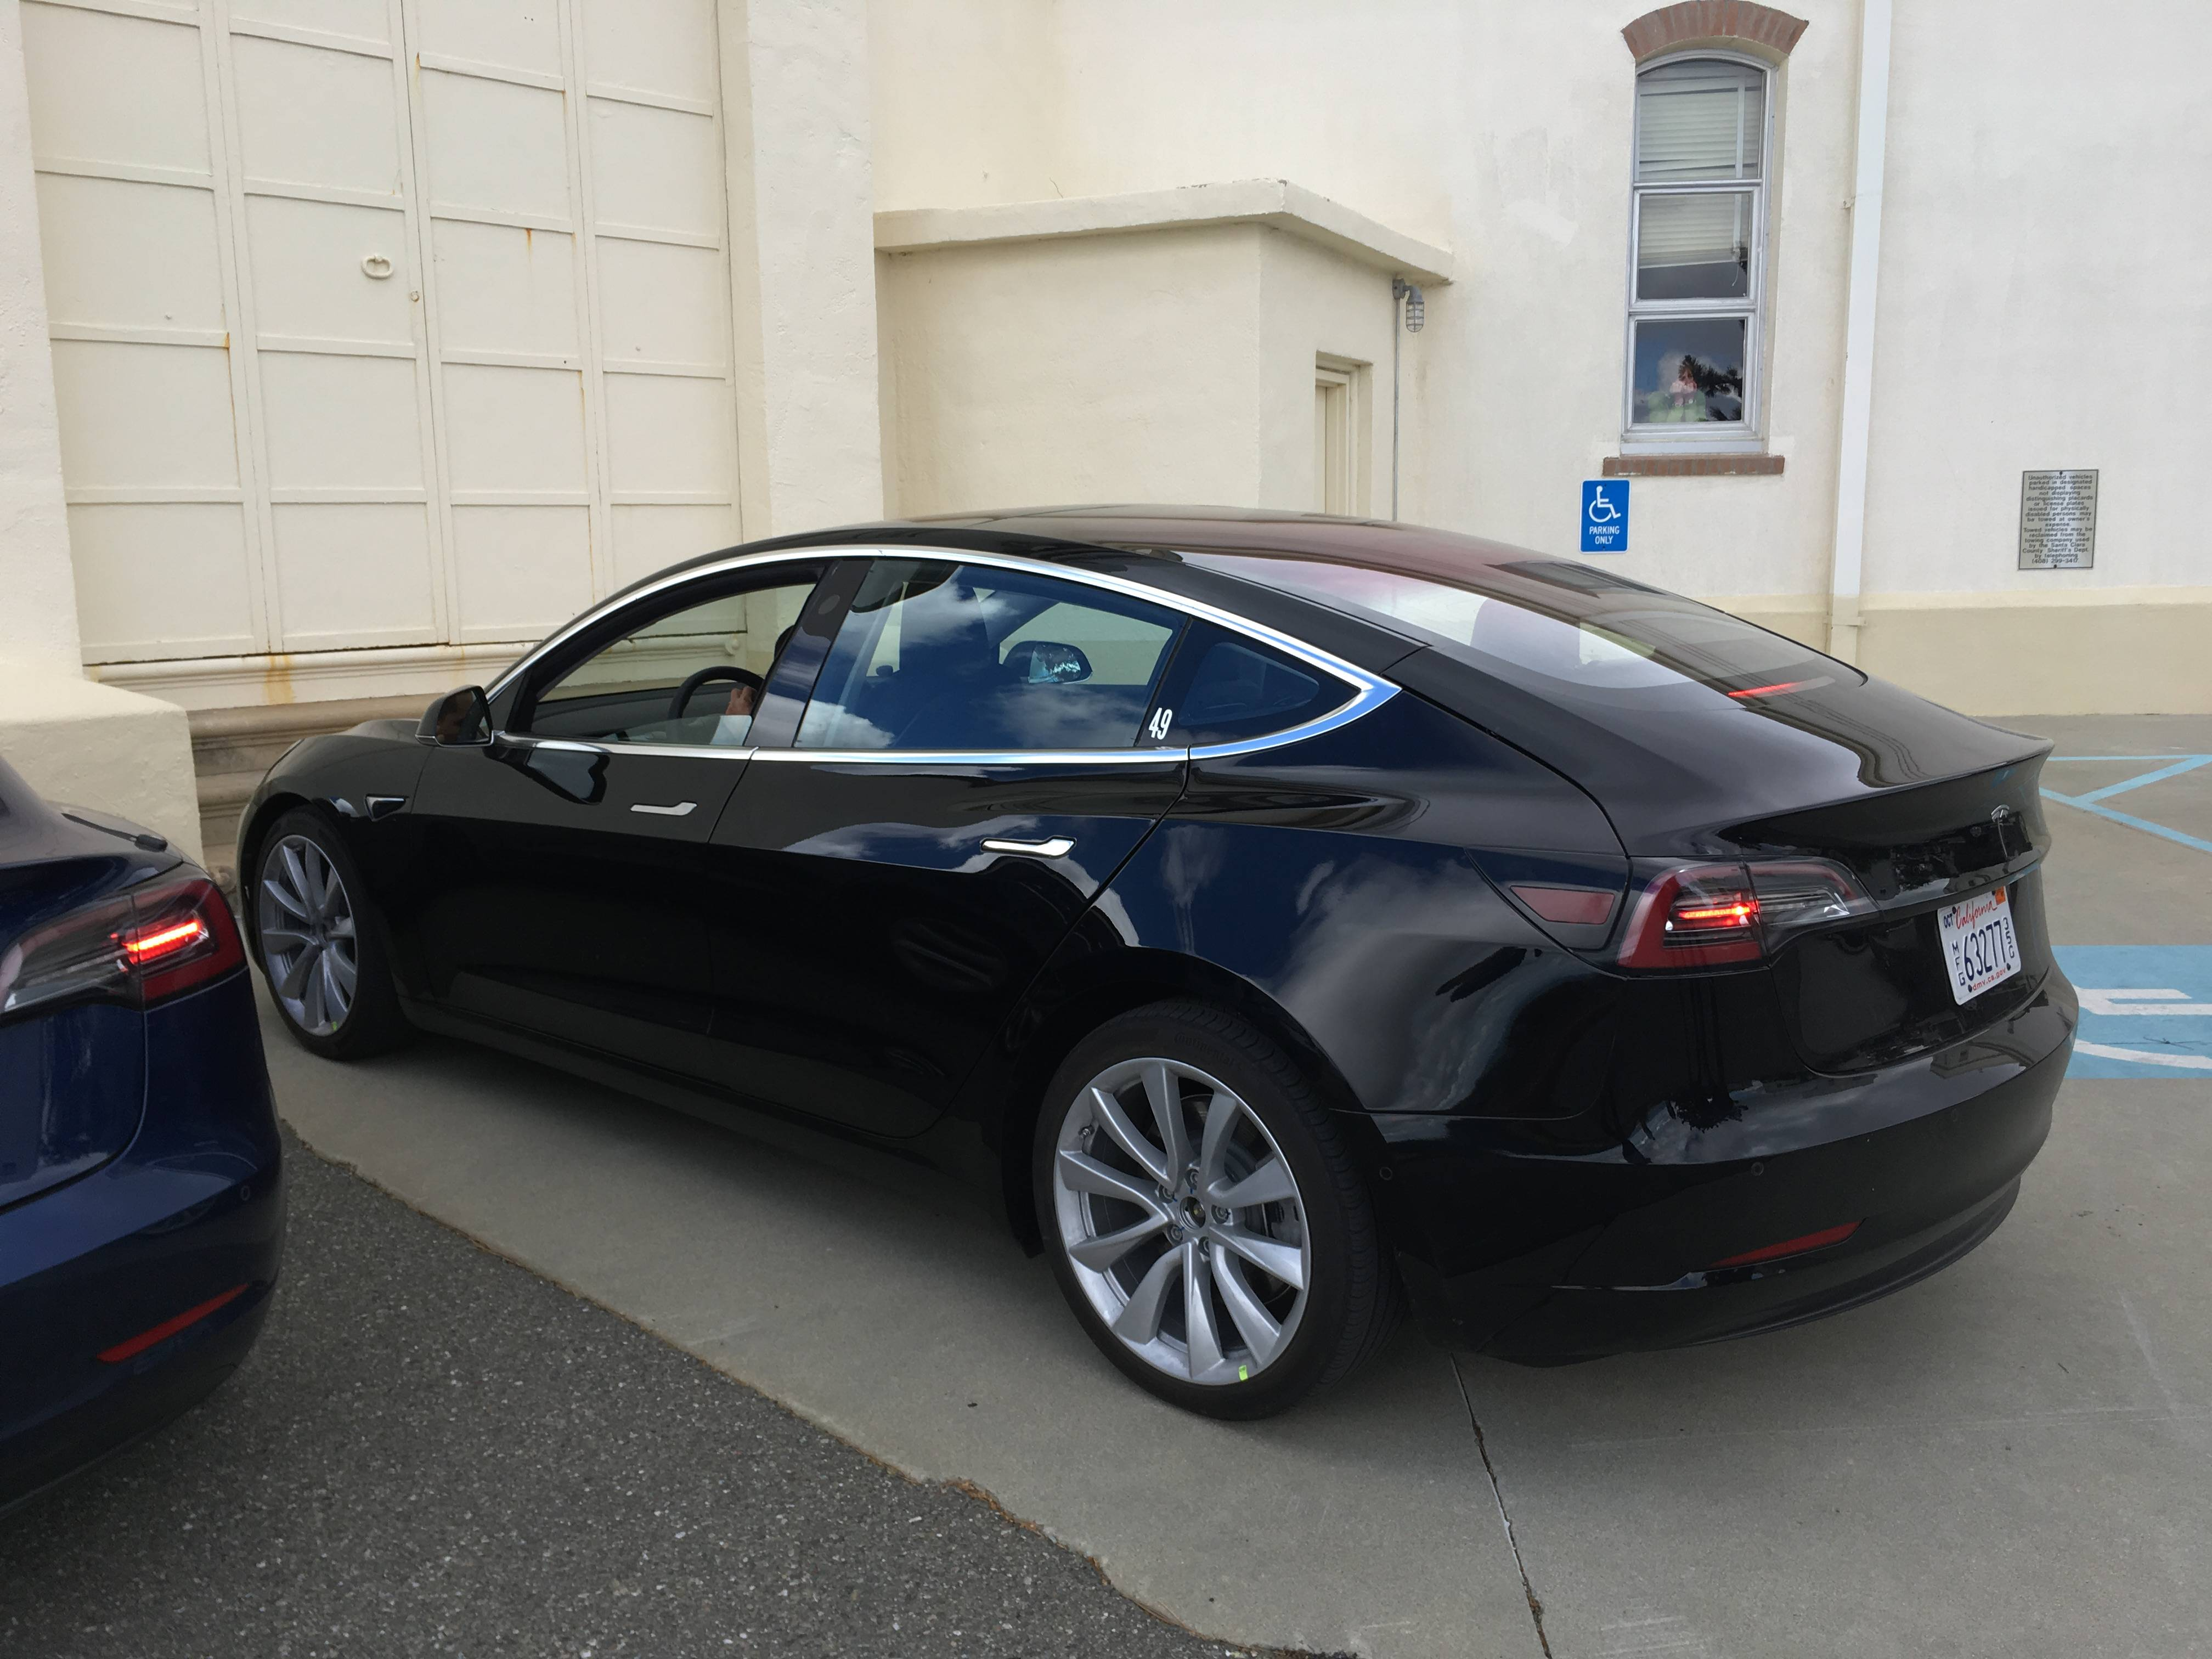 Tesla Model Y Interieur New Pictures Of Model 3 Interior Gallery The Last Driver